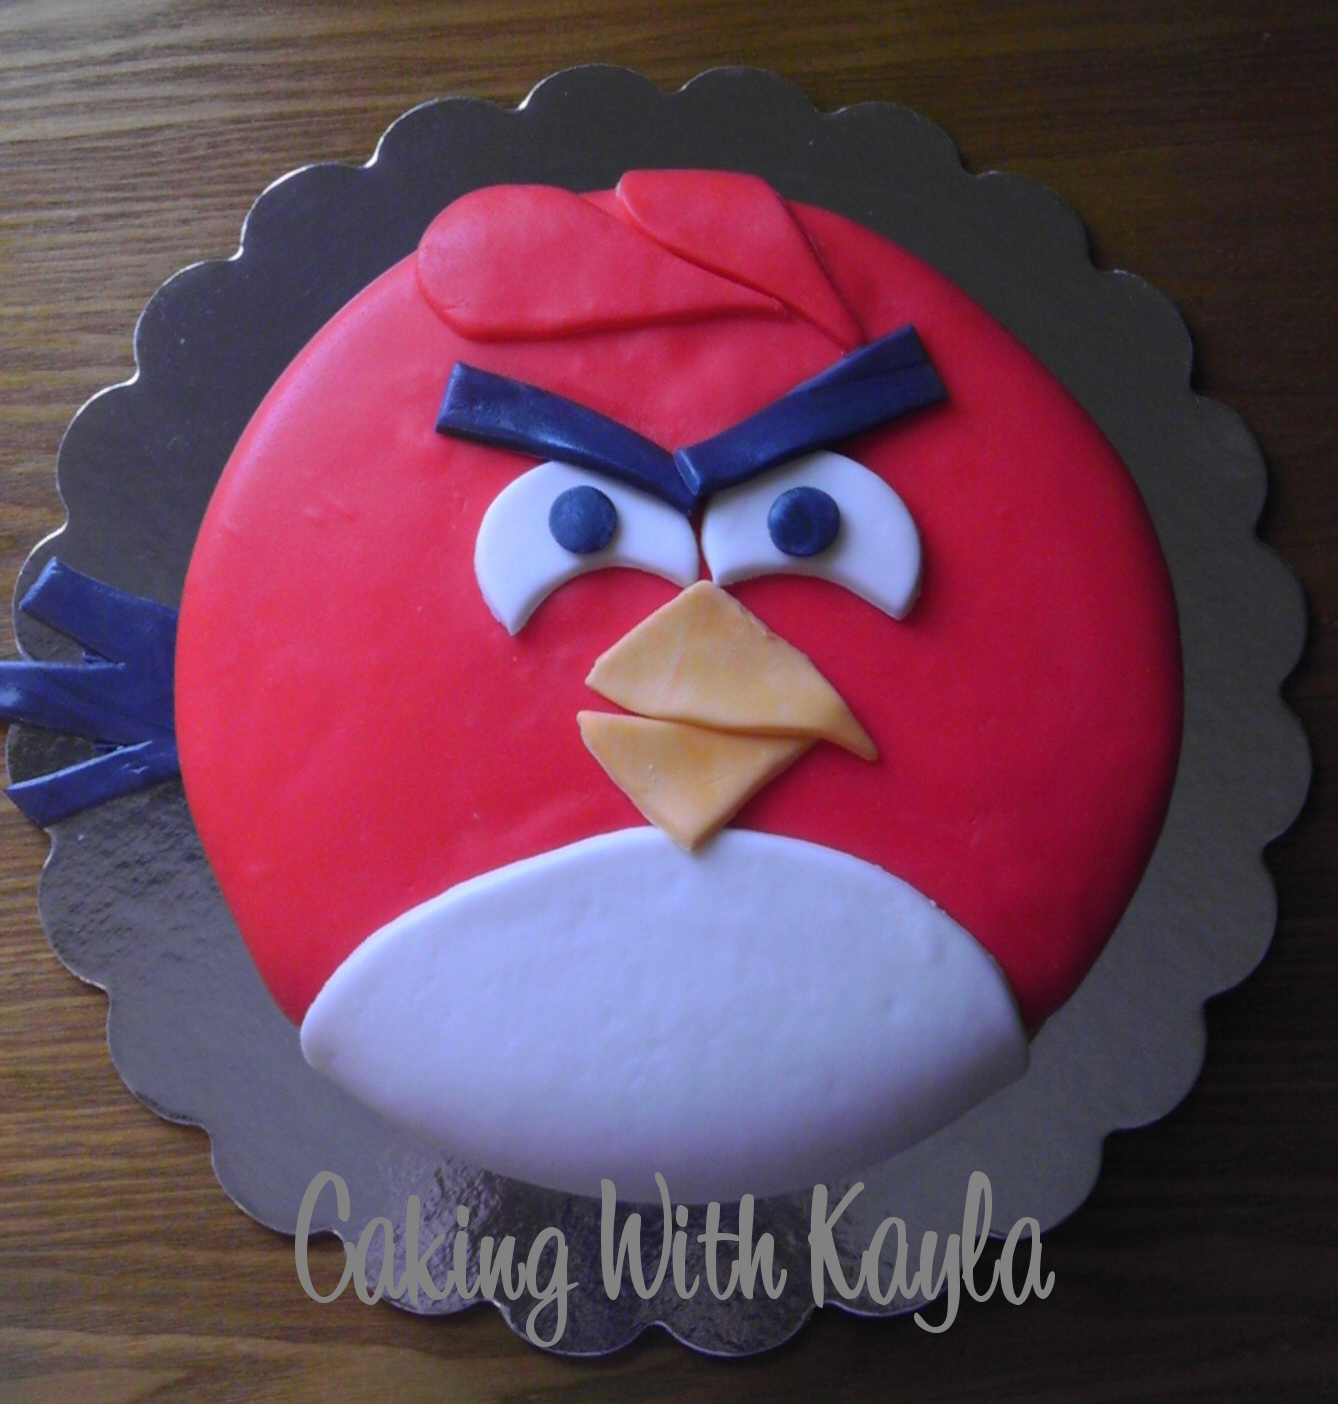 Caking with Kayla Angry Birds